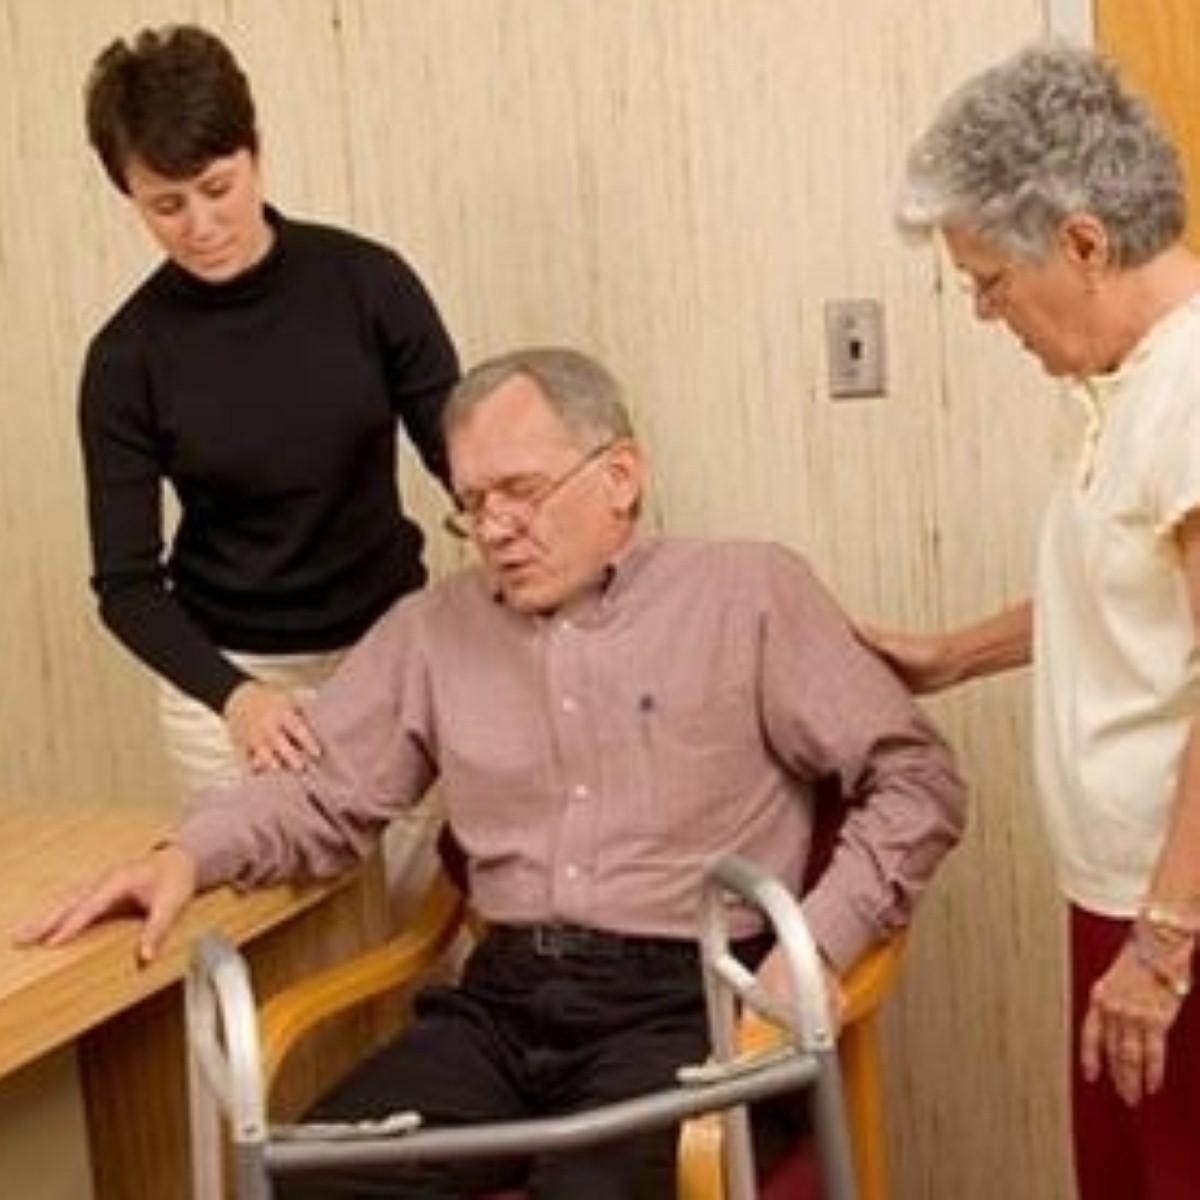 Politicians 'must do more' to help improve social care